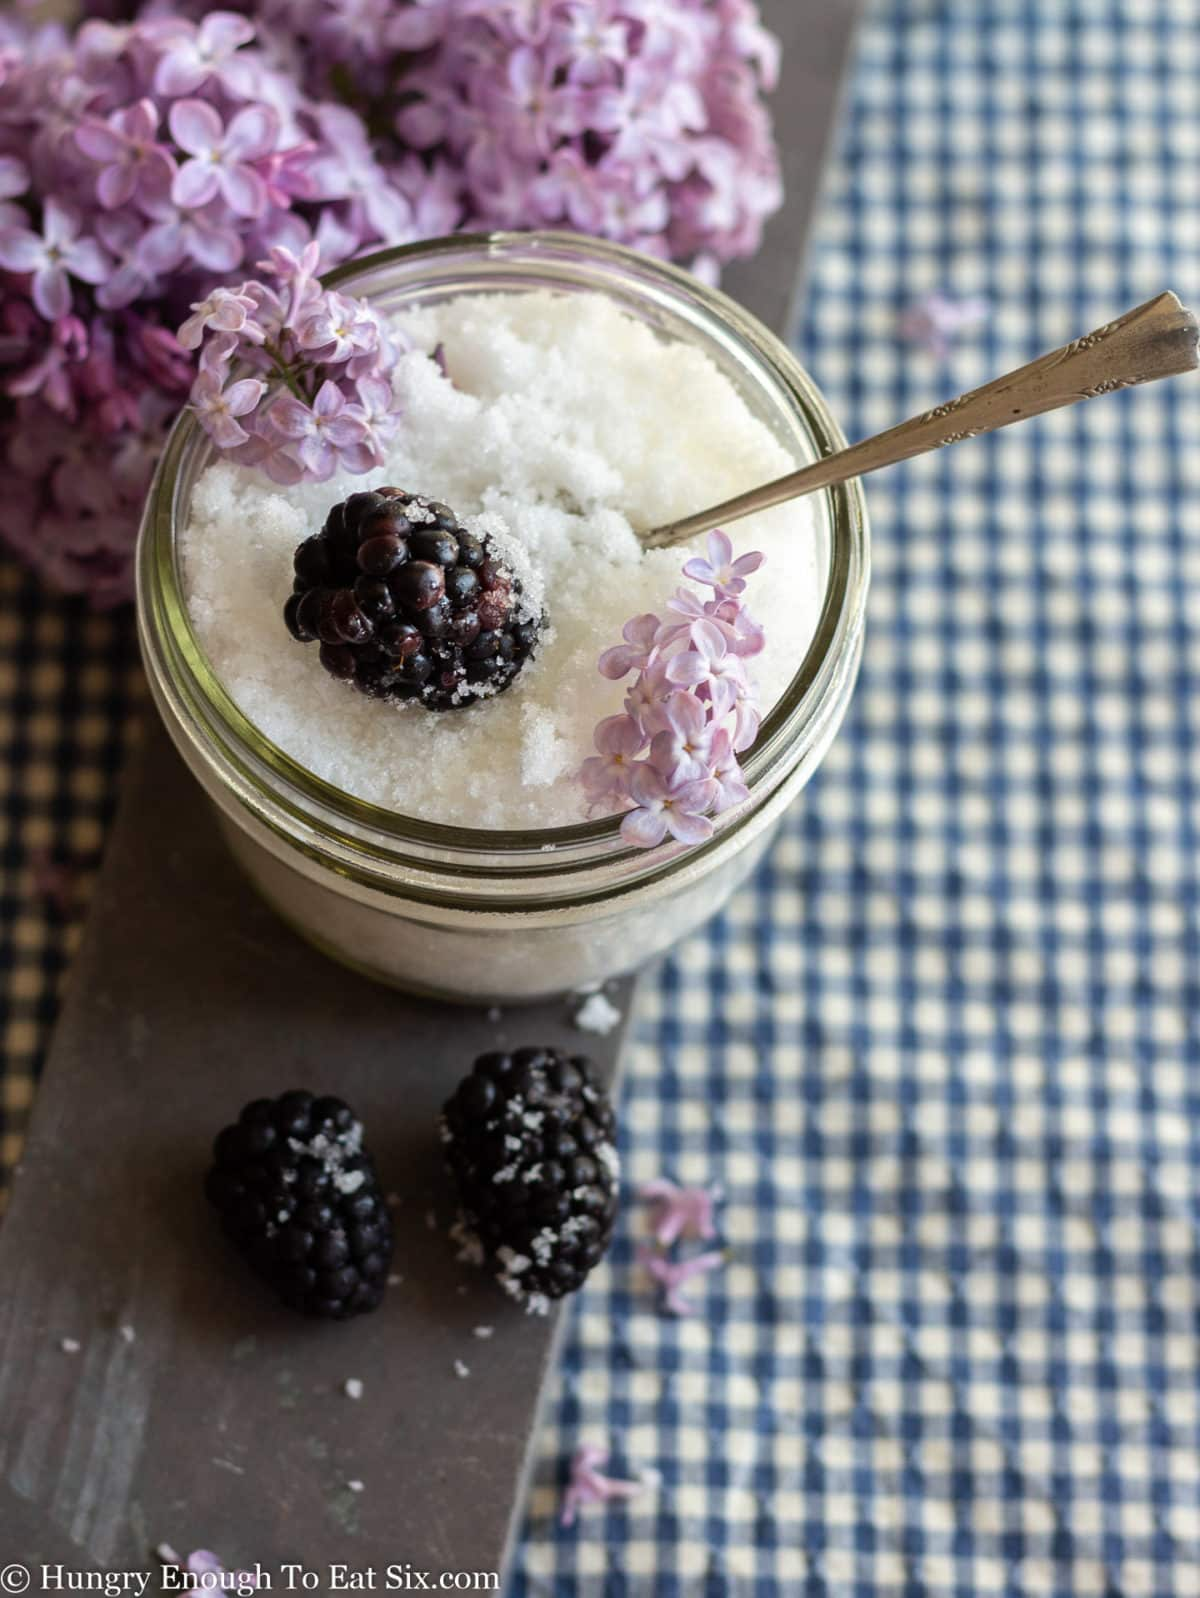 White lilac scented sugar in a glass dish with lilac blooms and fresh blackberries.